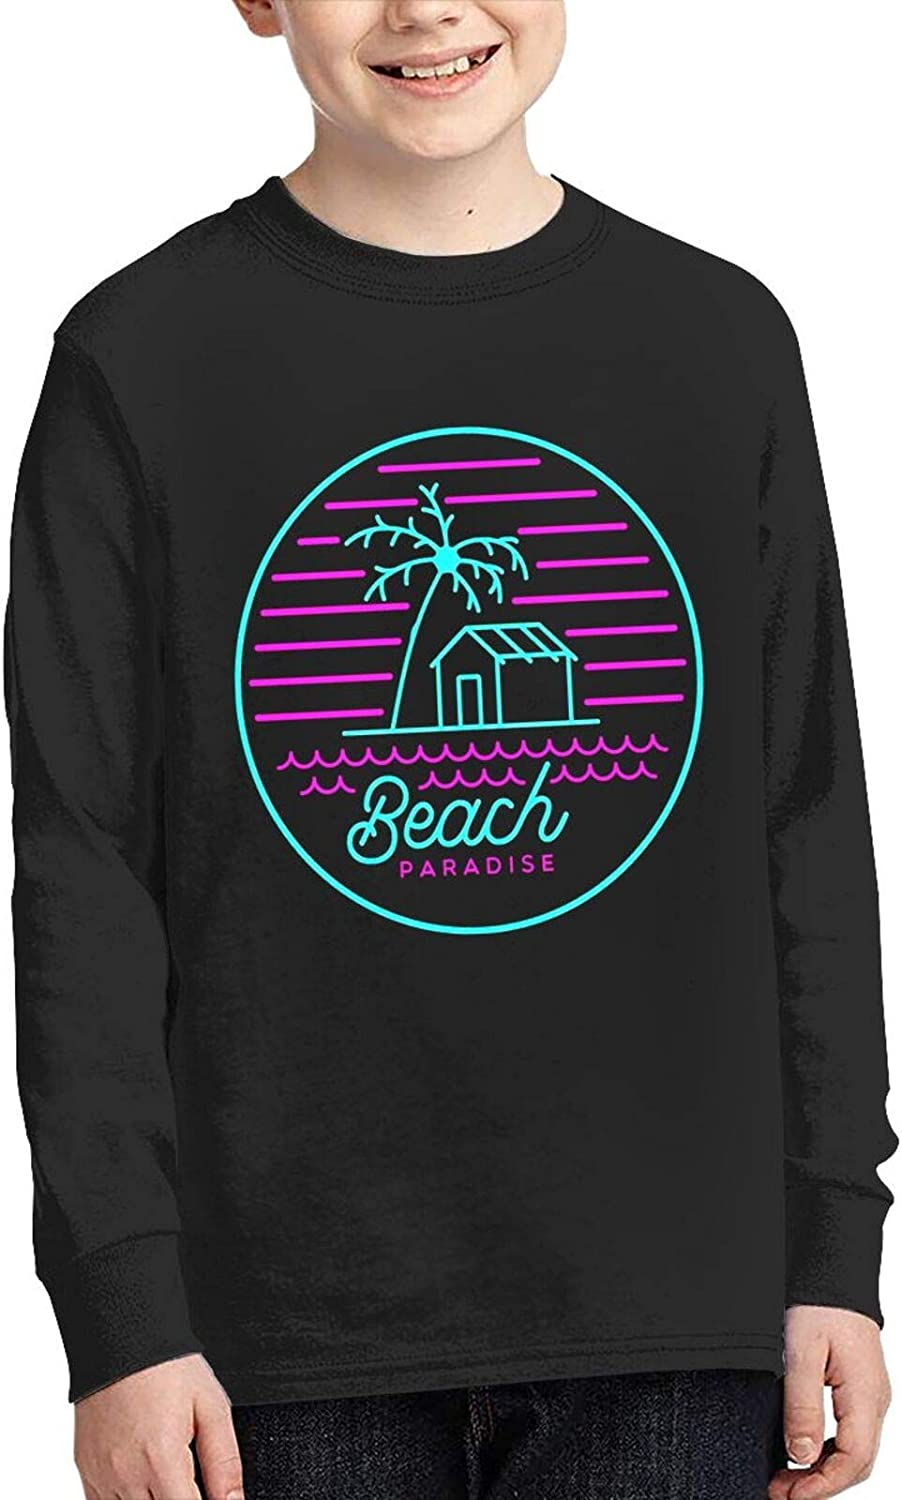 Beach Paradise Sweater Fashion and Comfortable Children's Sweater